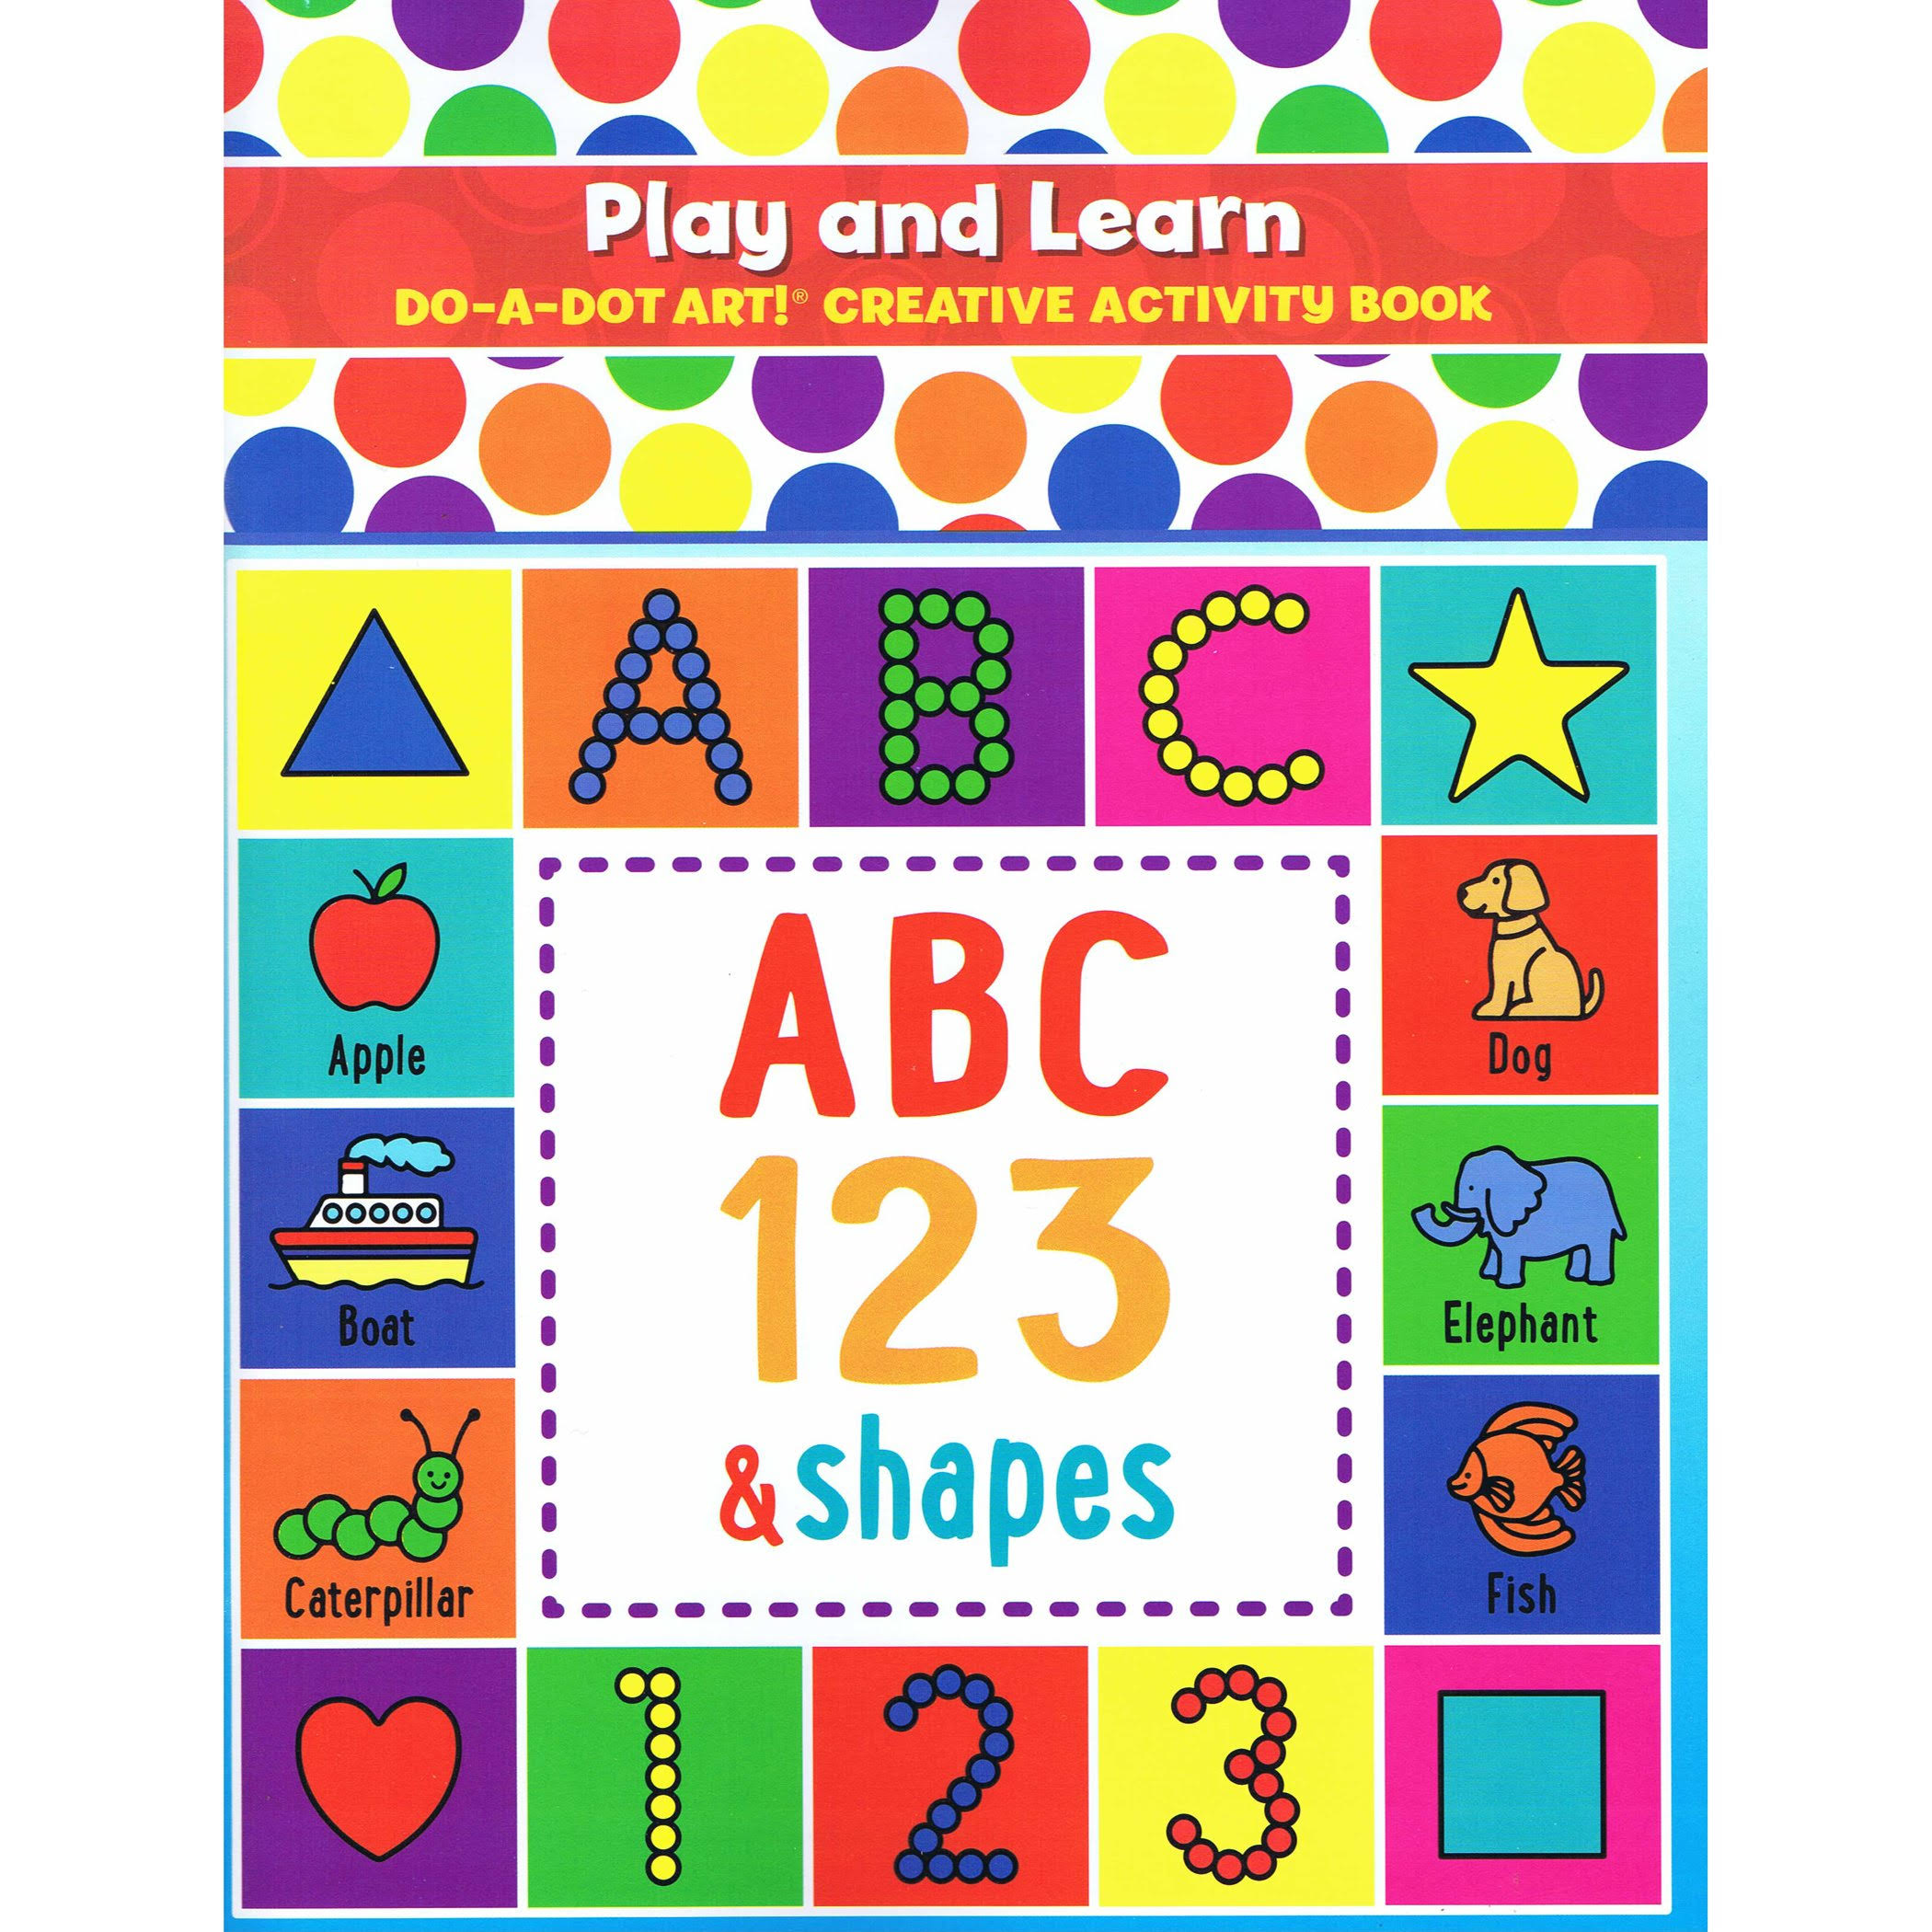 Play & Learn Do-a-Dot Creative Activity Book